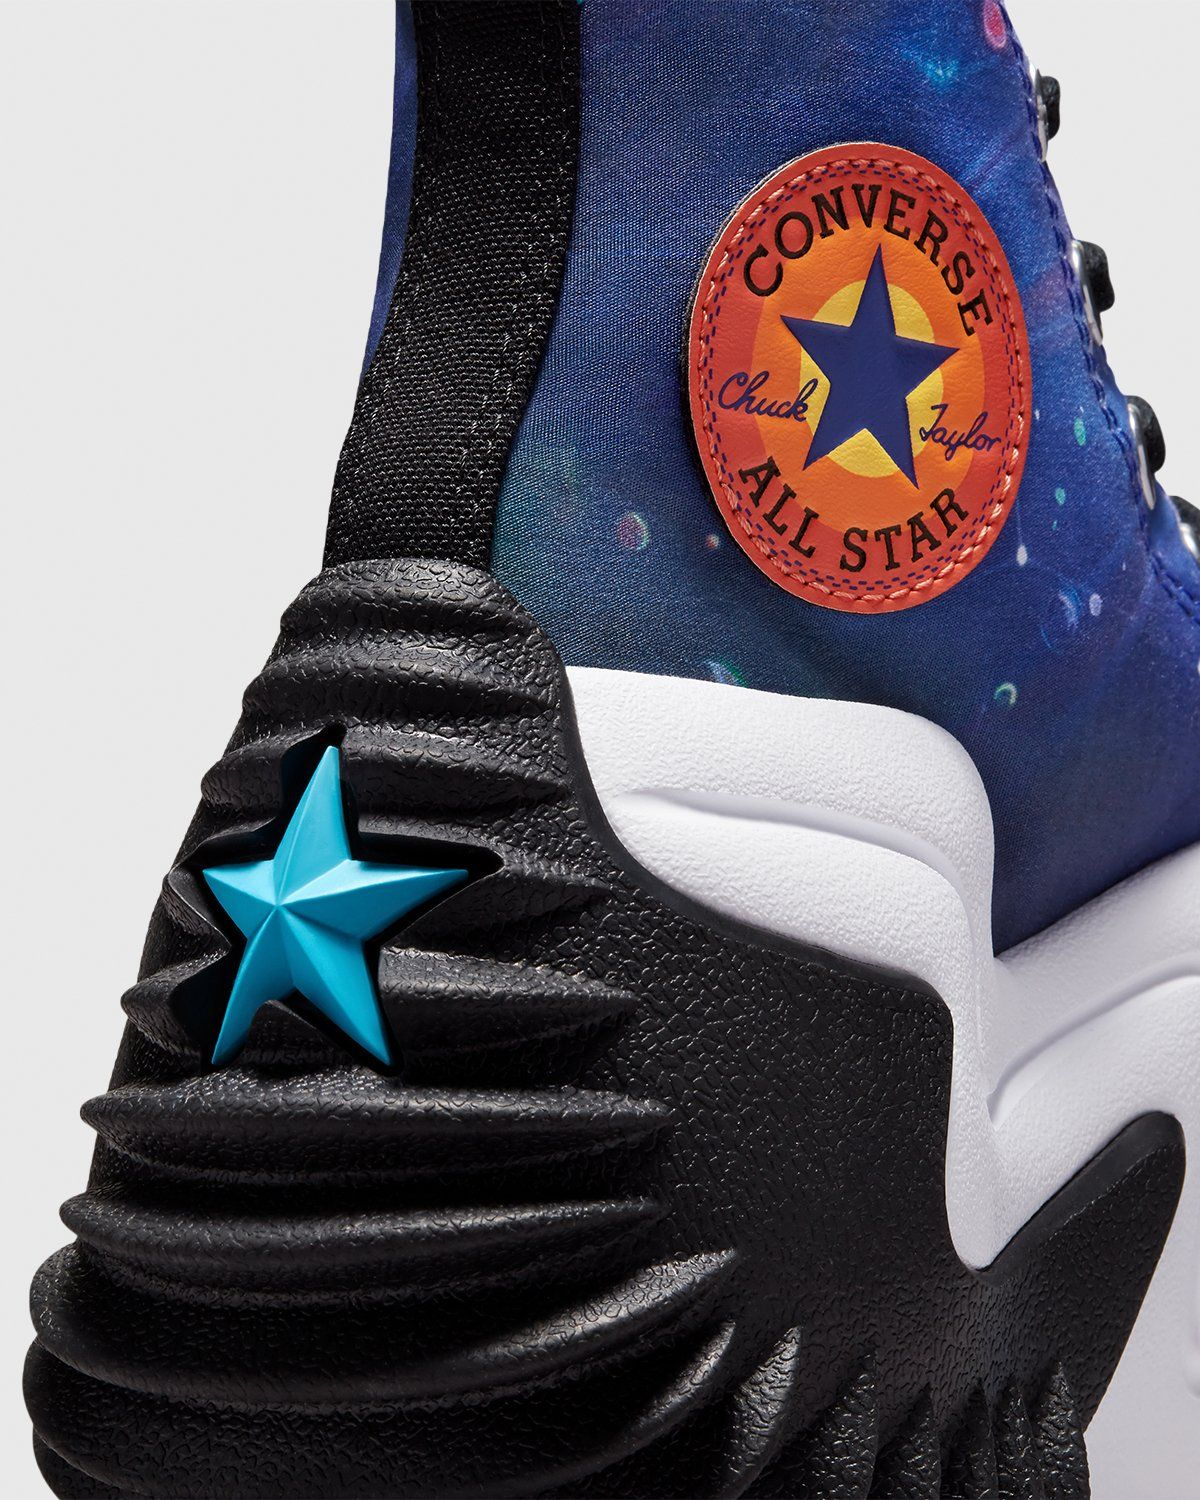 Converse x Space Jam: A New Legacy – Run Star Motion Multi - Image 7